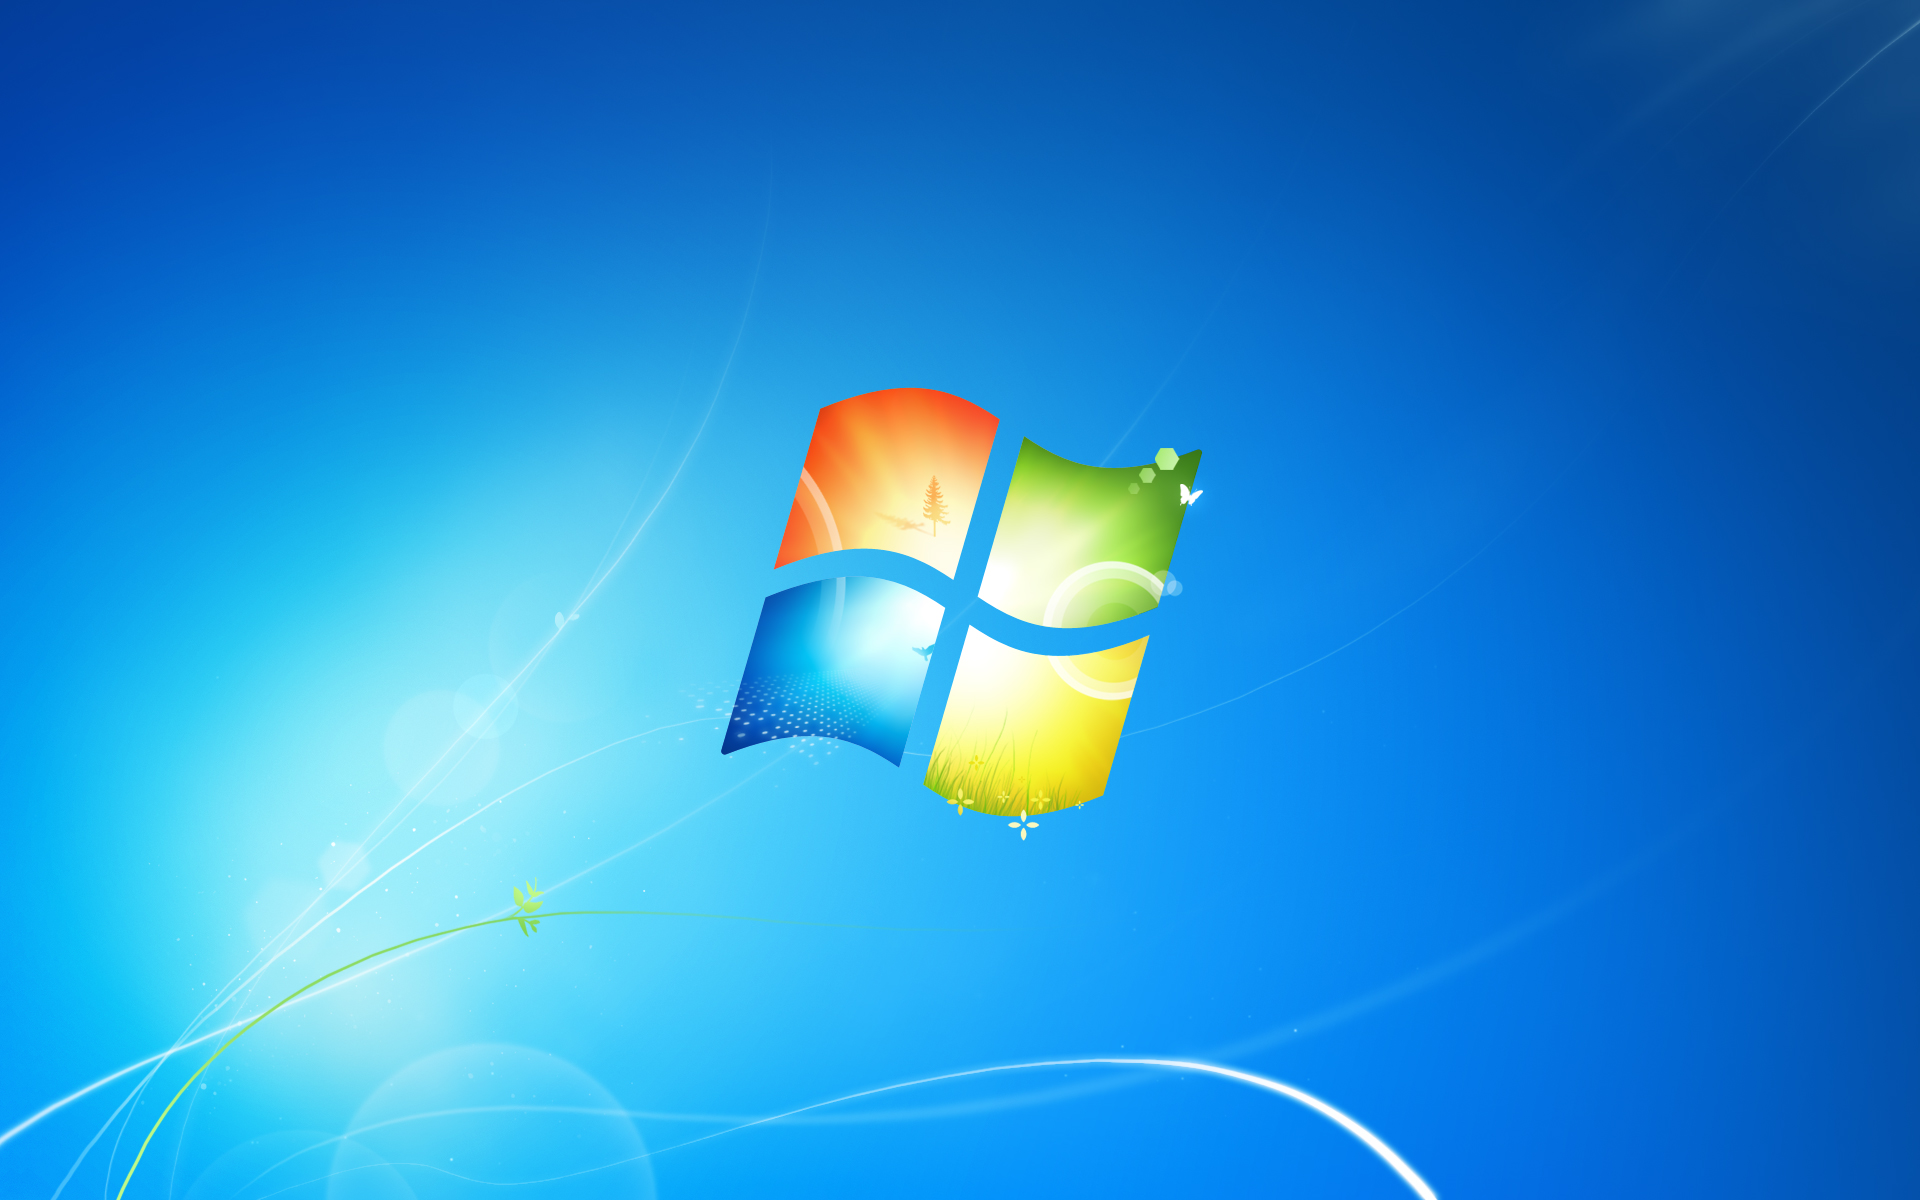 Windows Wallpaper Free Background